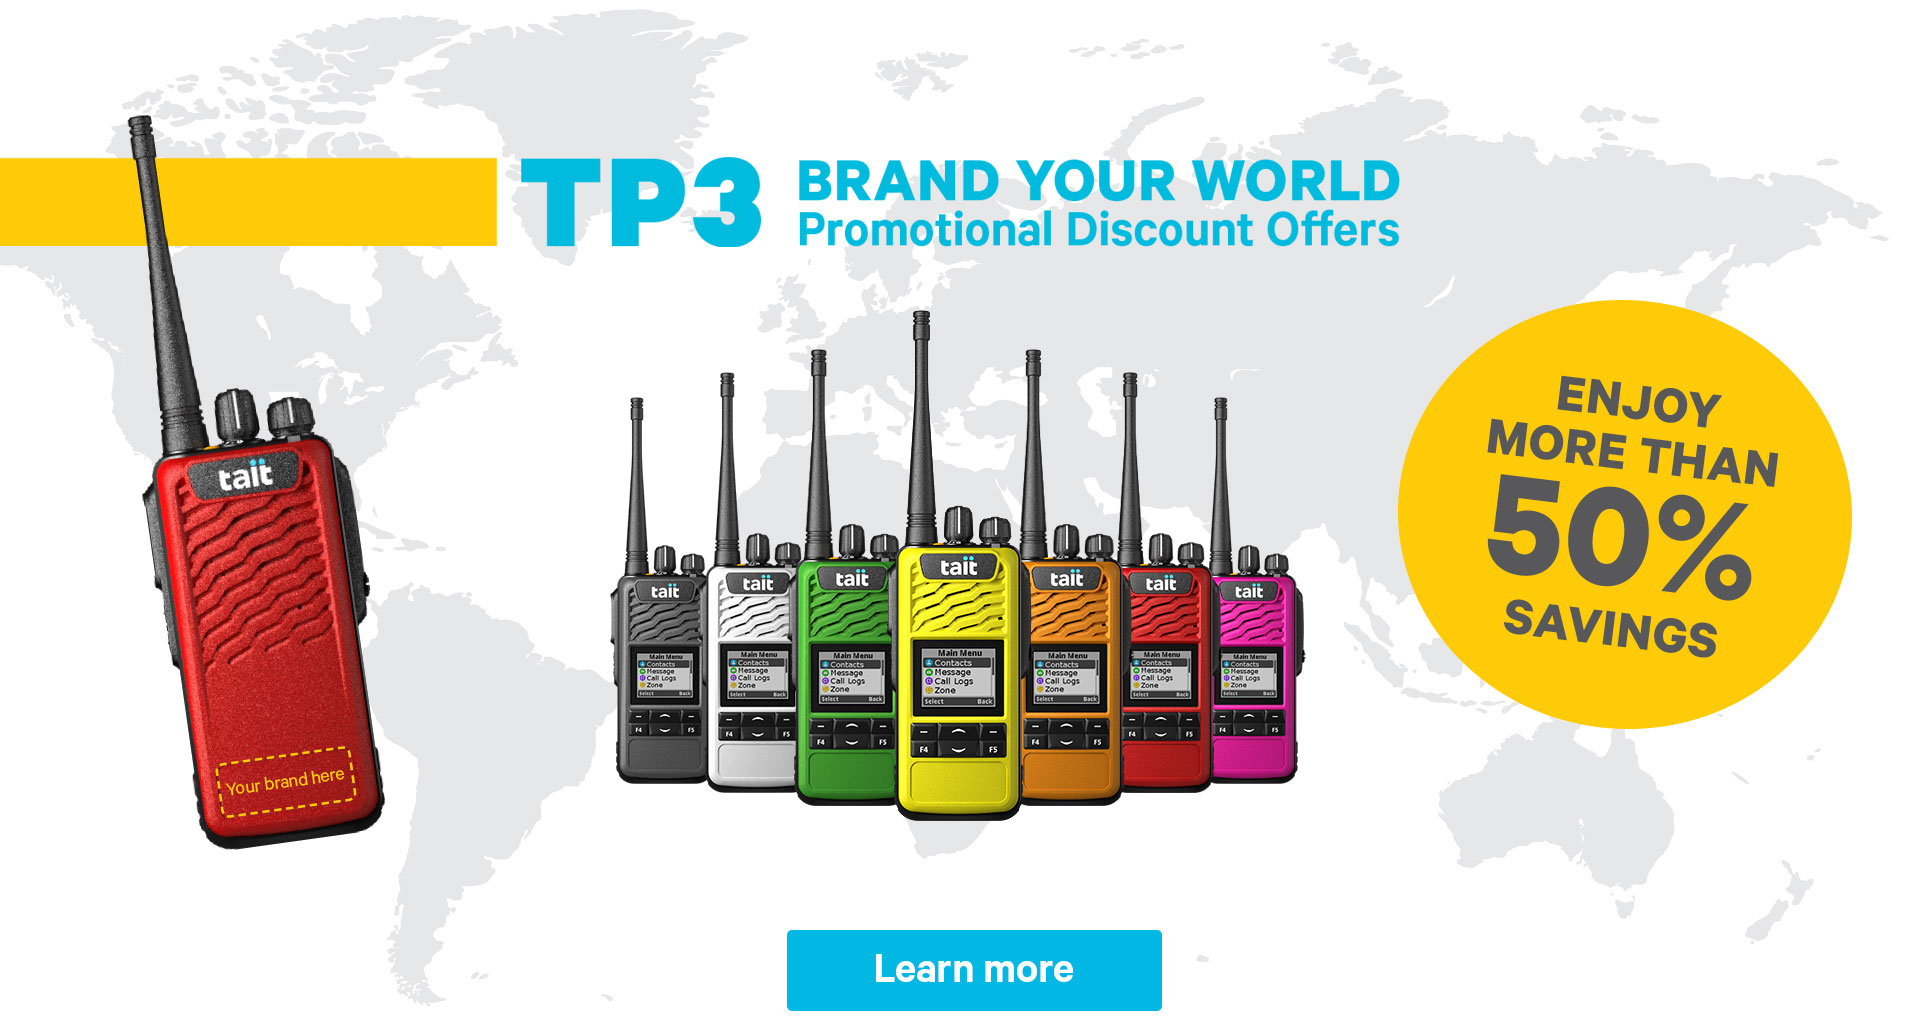 Brand Your World with TP3